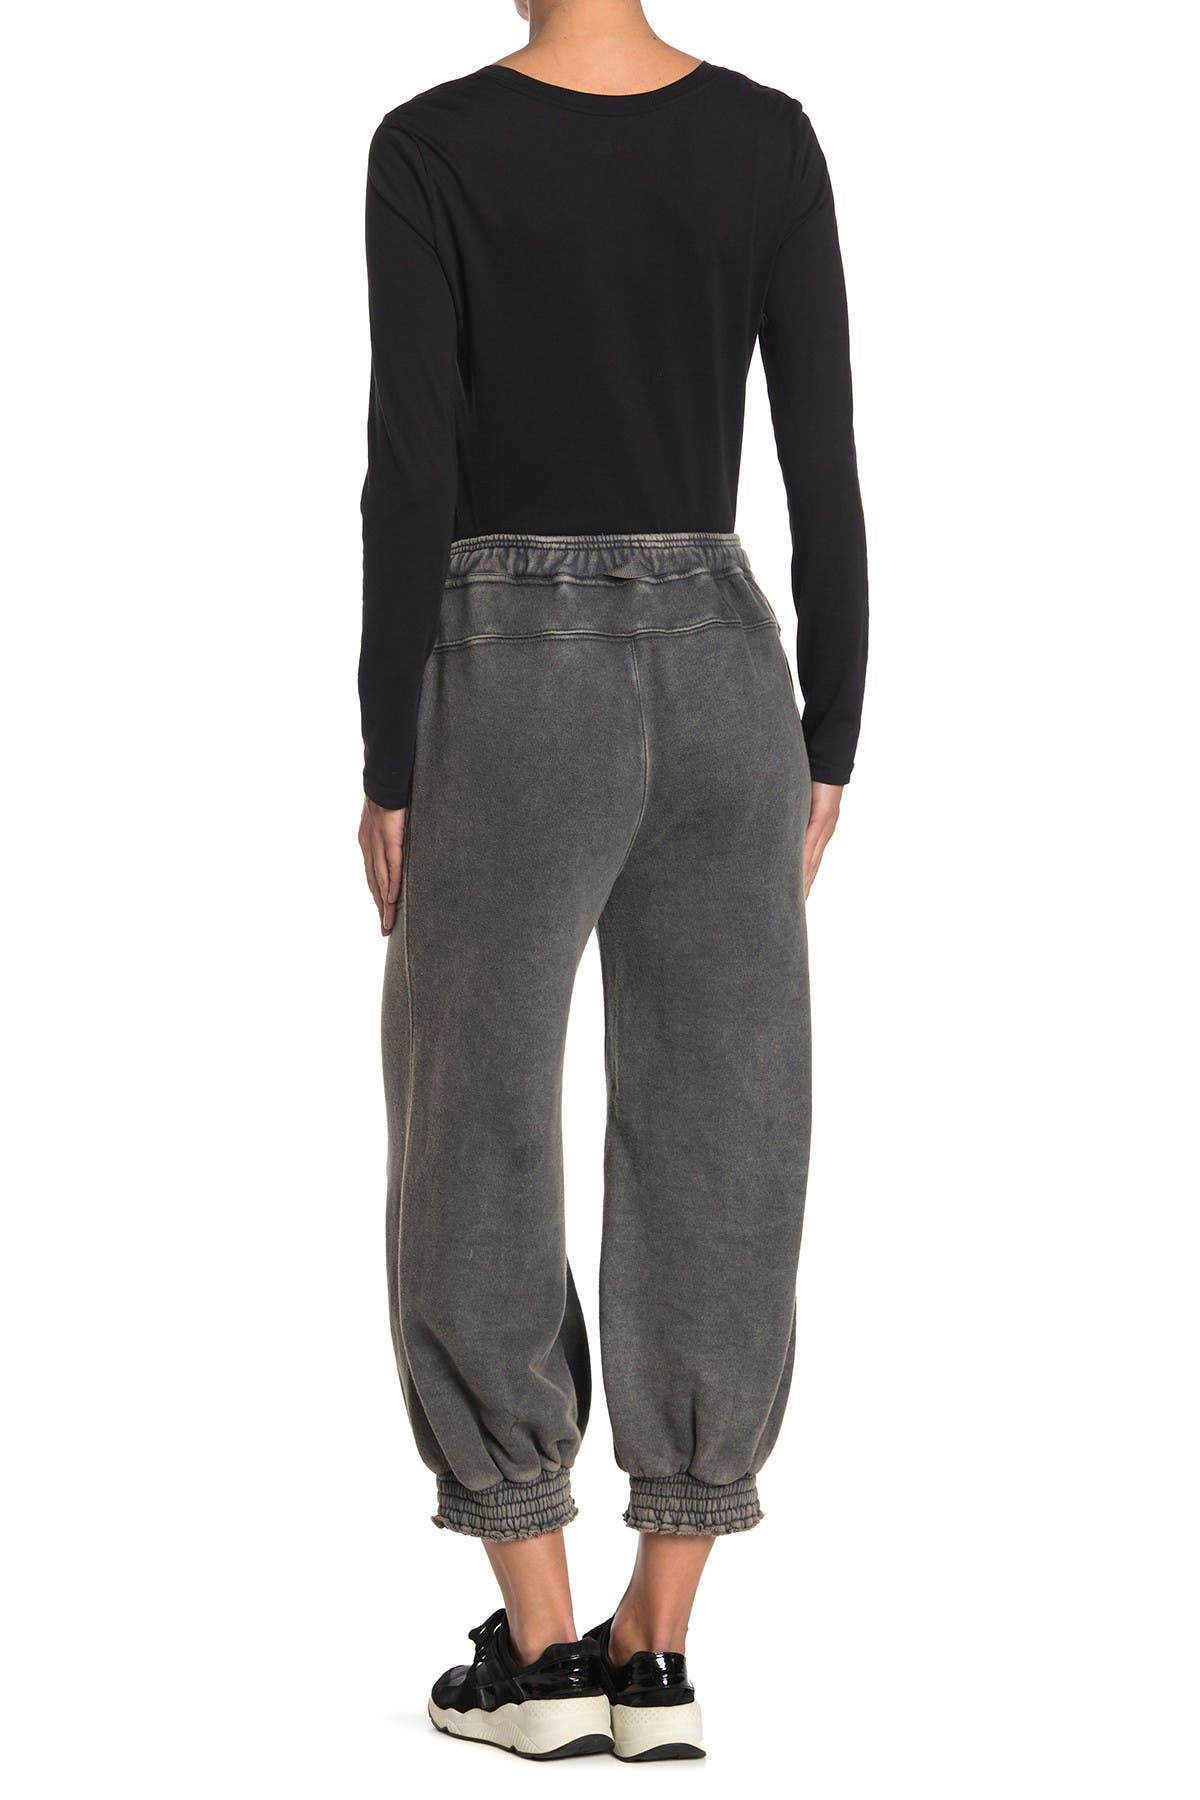 Image of Free People FP Movement Ivy League Sweatpants